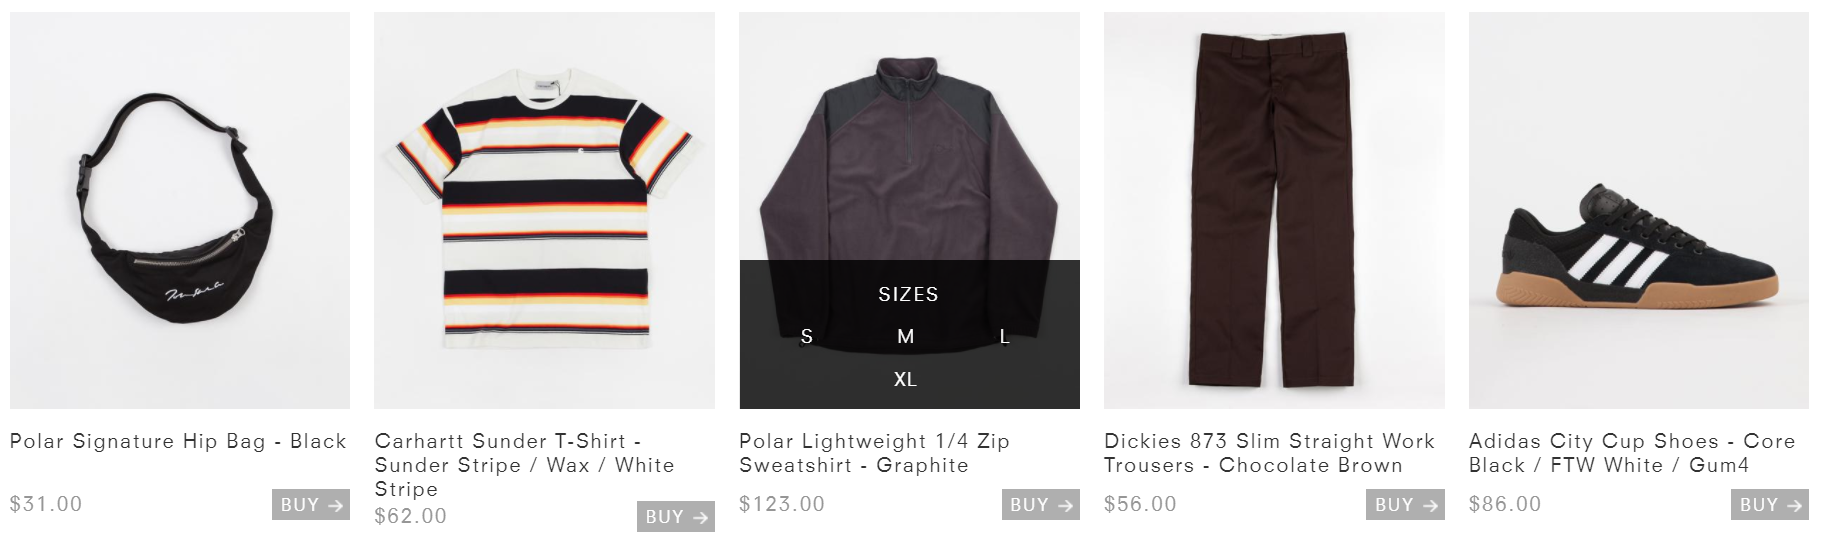 ecommerce store sizing indicator